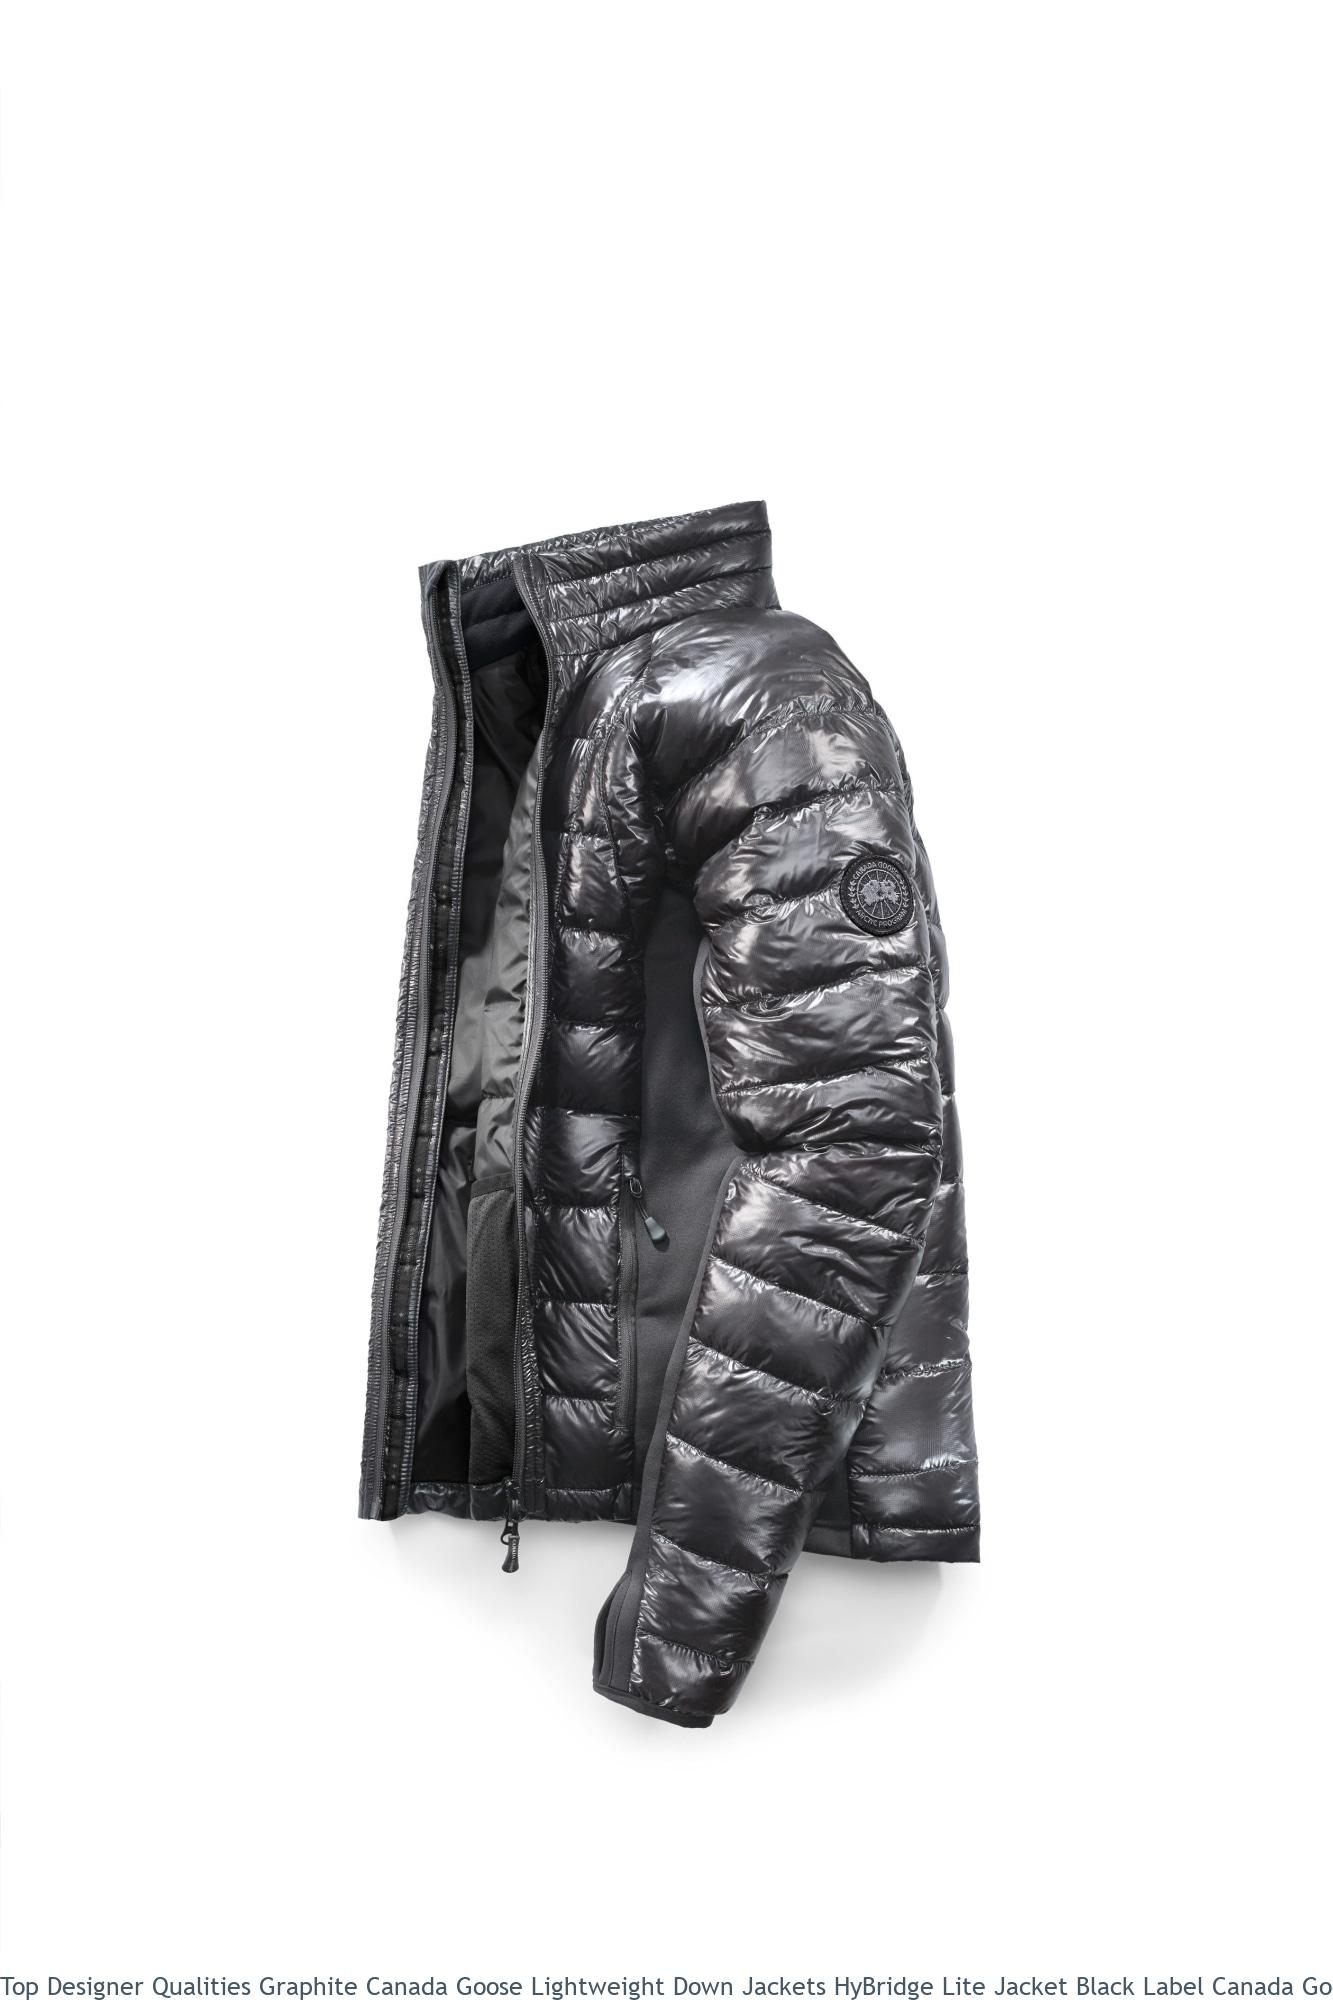 Top Designer Qualities Graphite Canada Goose Lightweight